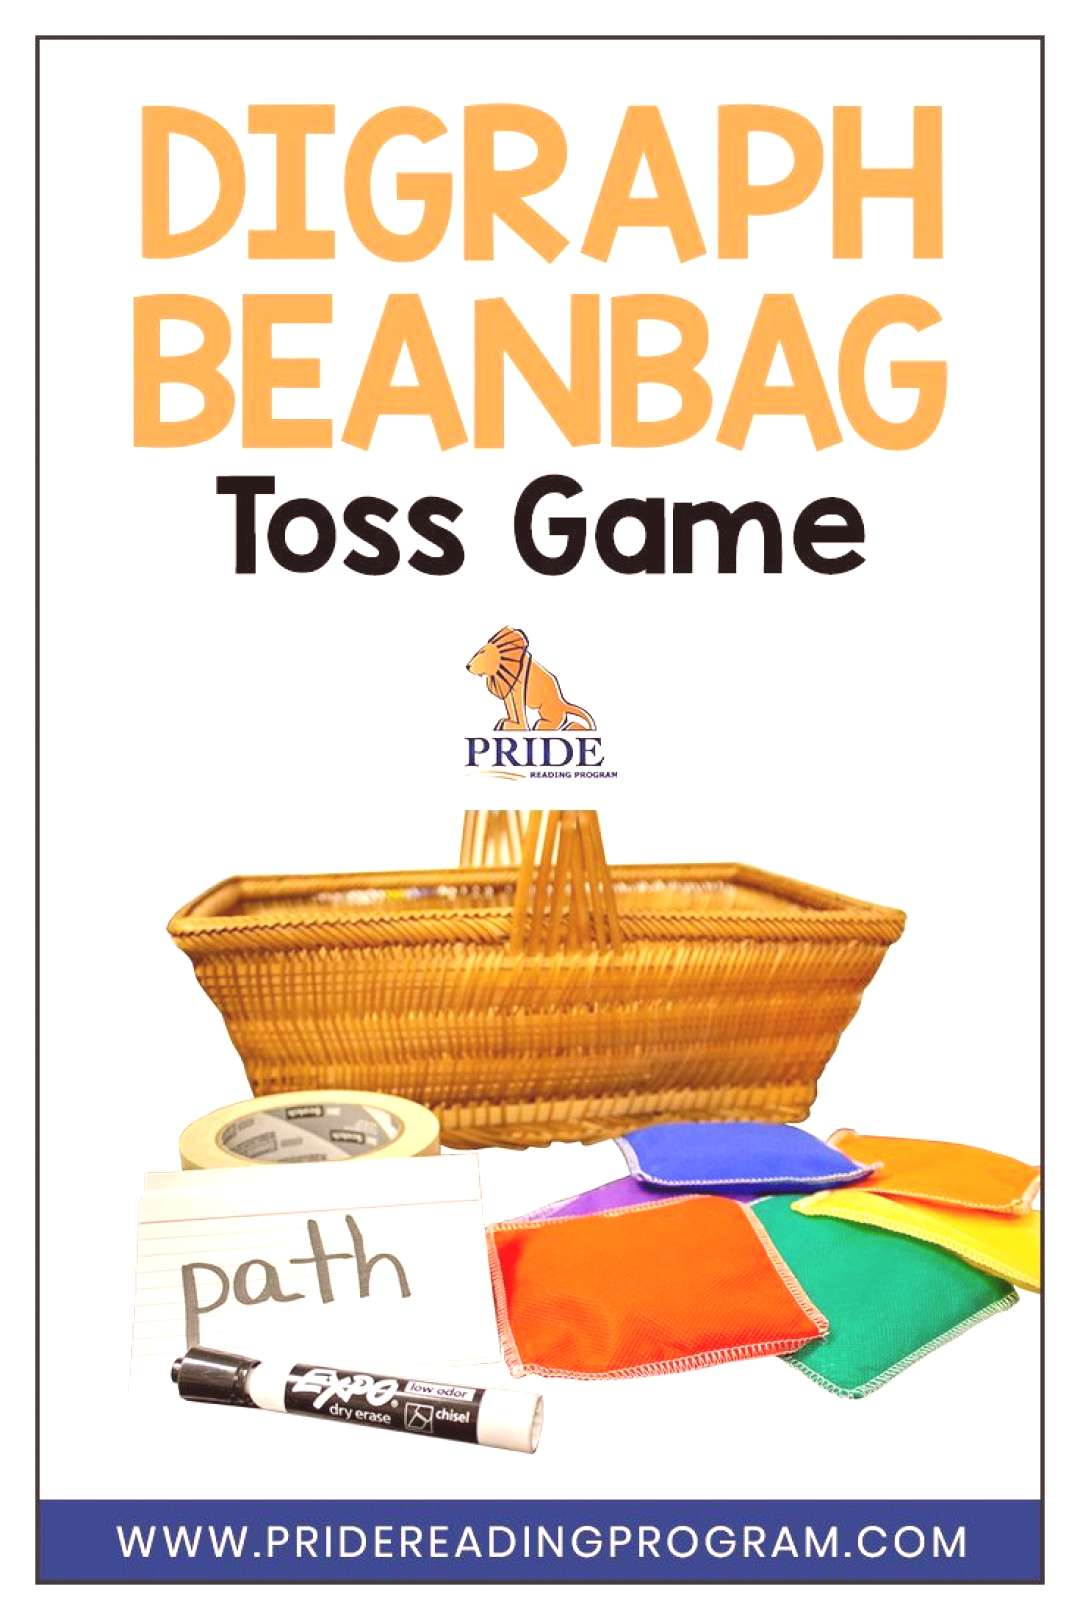 Digraph Beanbag Toss Game Learning Digraphs can be really fun if you make a game out of it. Here i